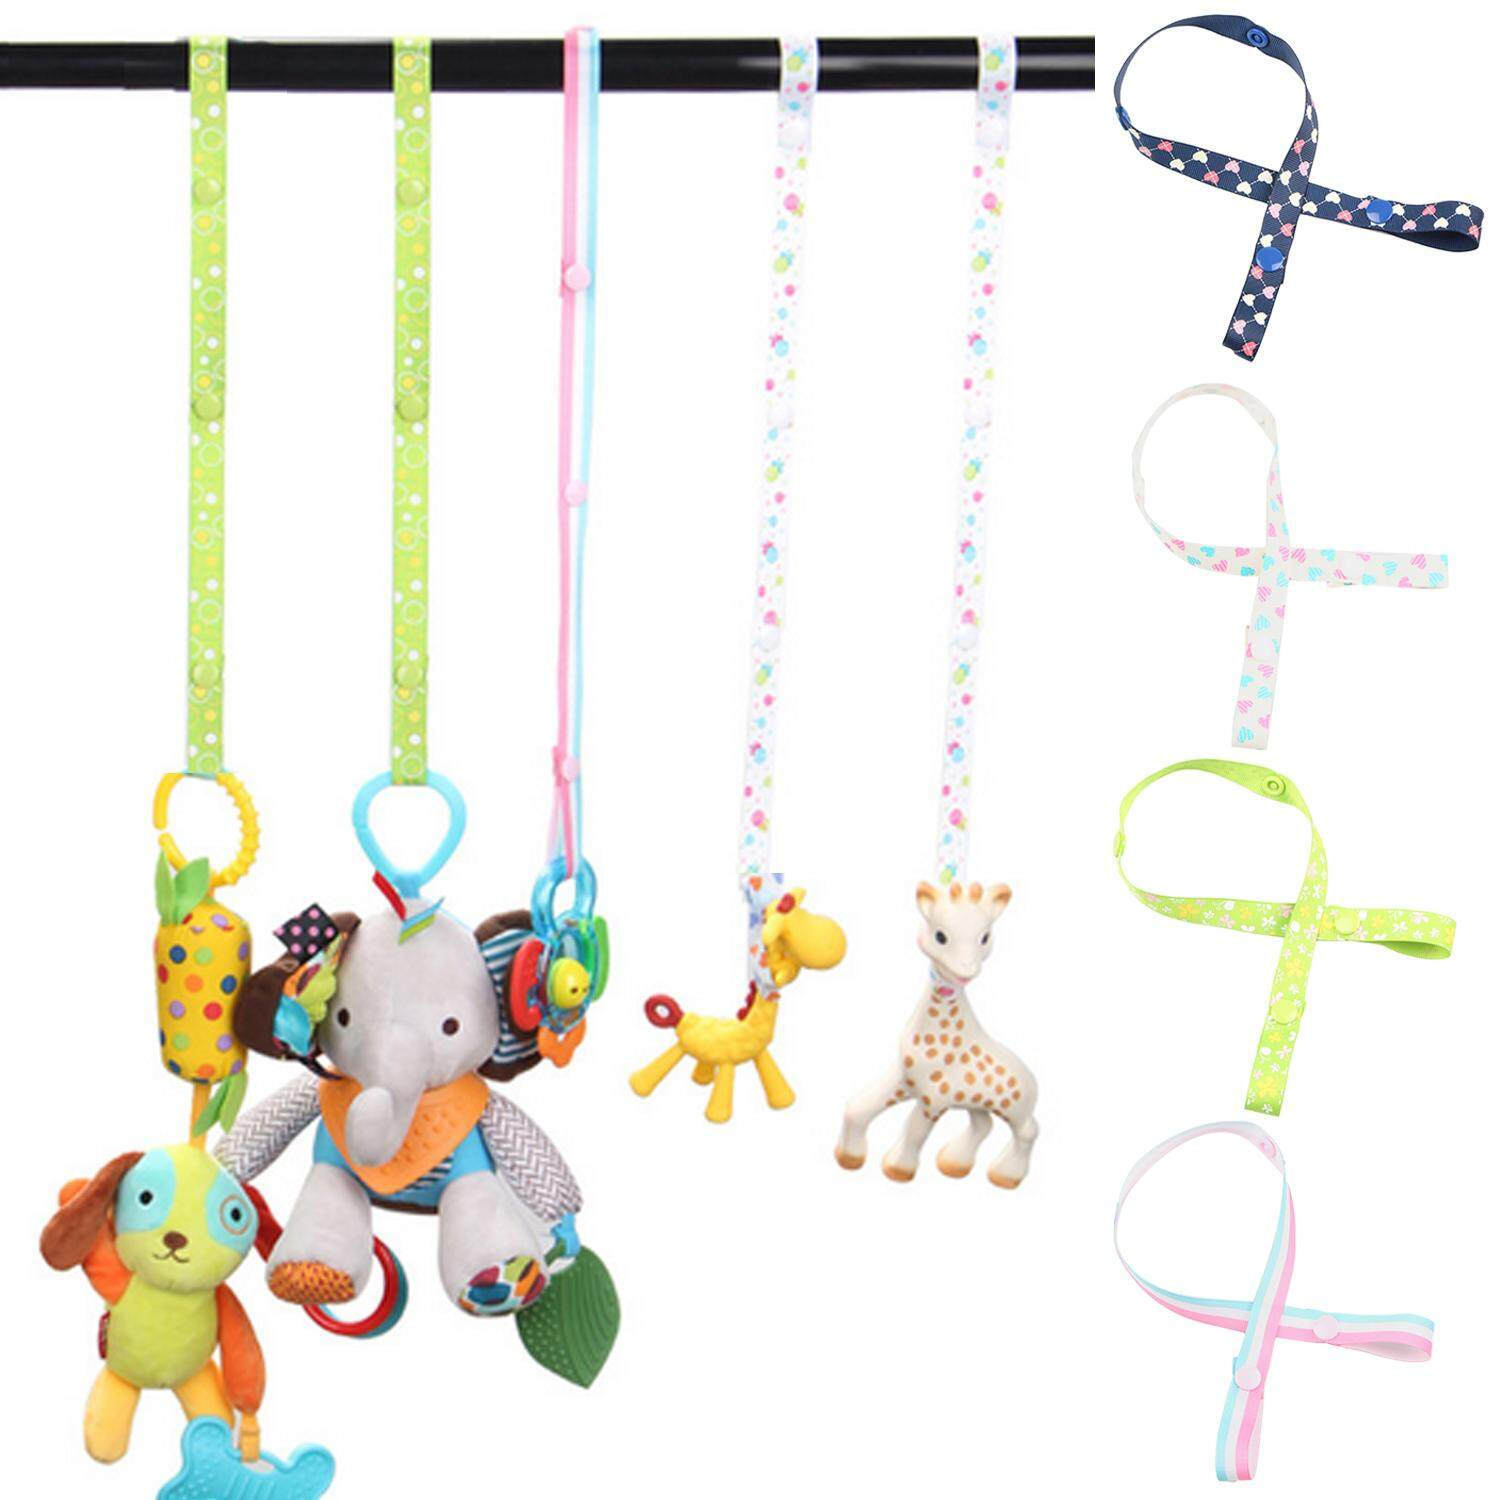 5pcs Assorted Colors Adjustable Anti-Drop Baby Bottle Toys Sippy Cup Holder Strap Clip Hanger With Fixed Button For Stroller Pram - Intl By Stoneky.